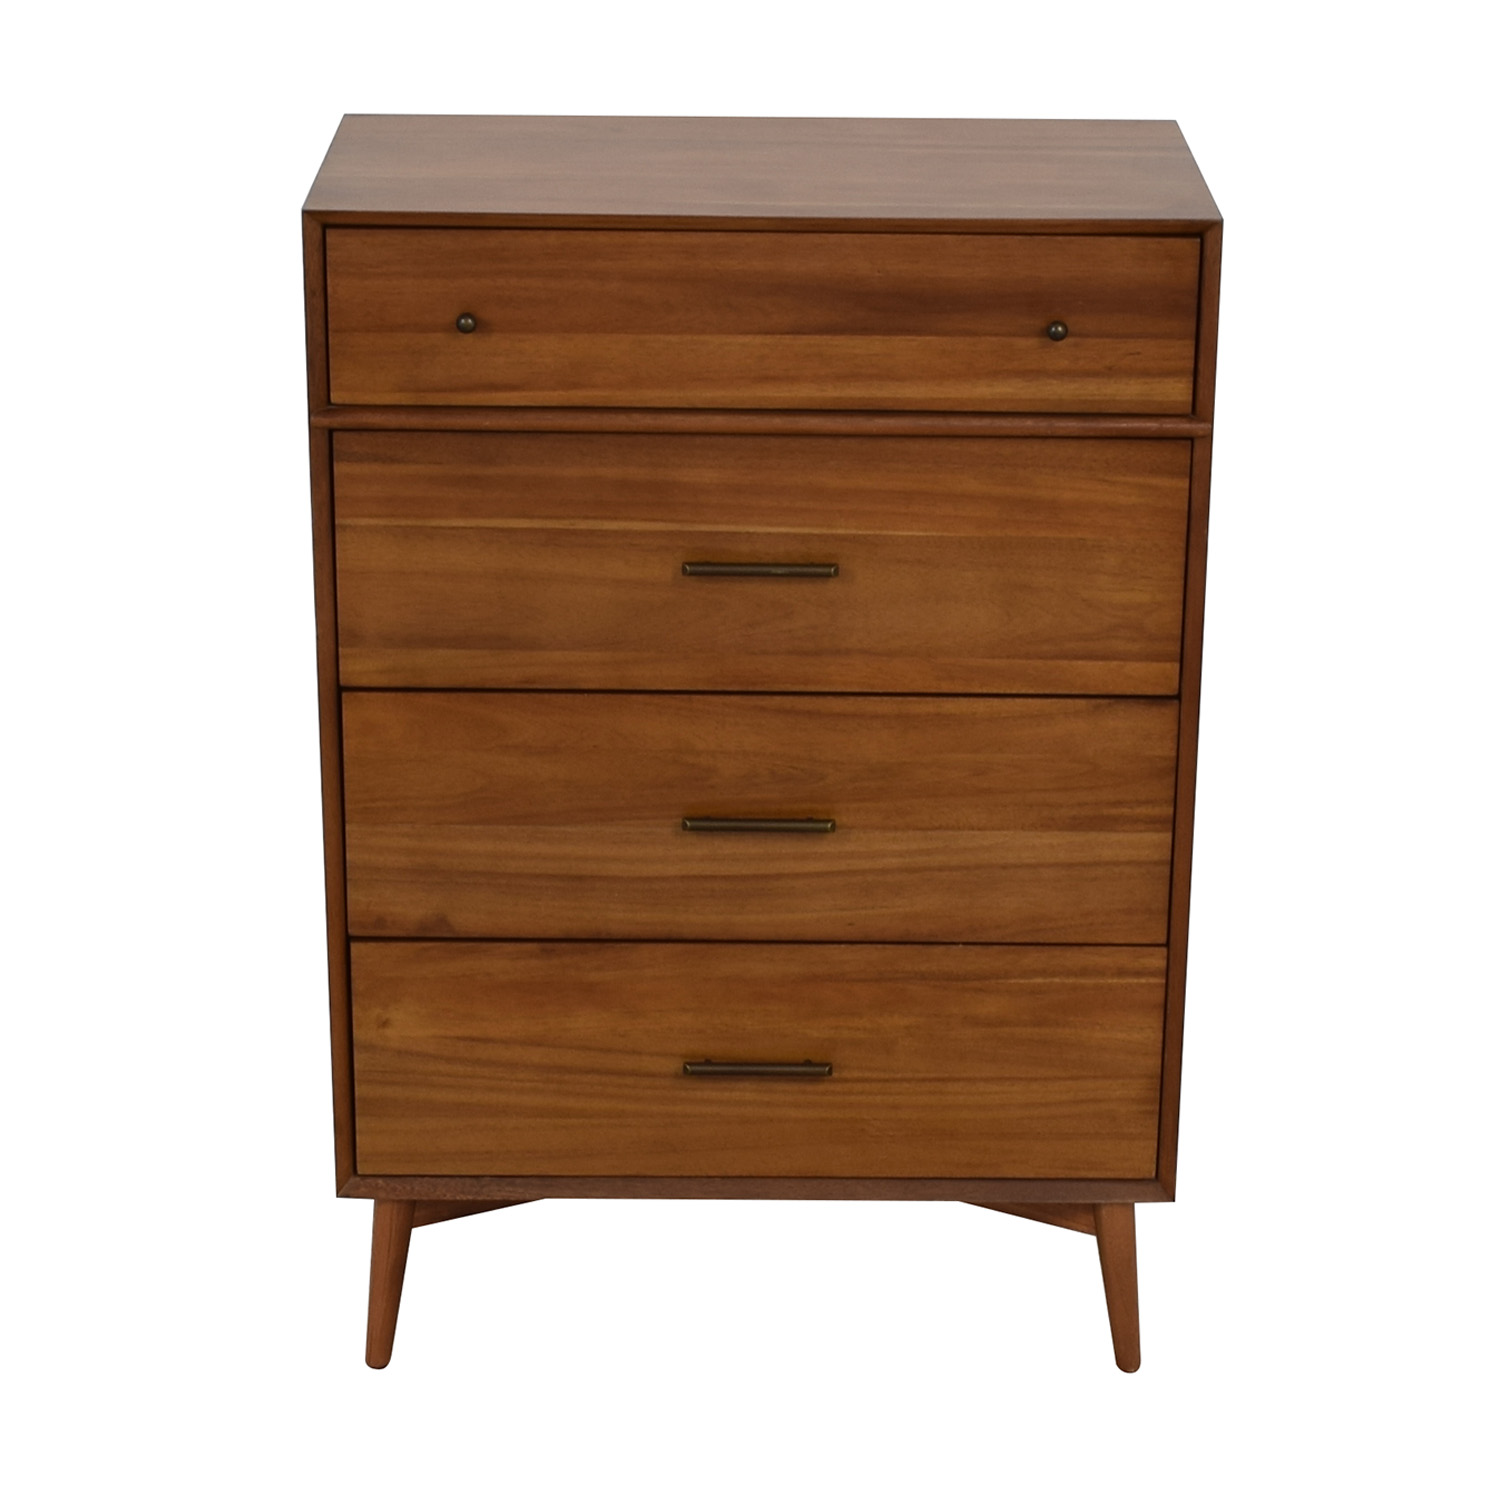 buy West Elm West Elm Acorn Four-Drawer Dresser online